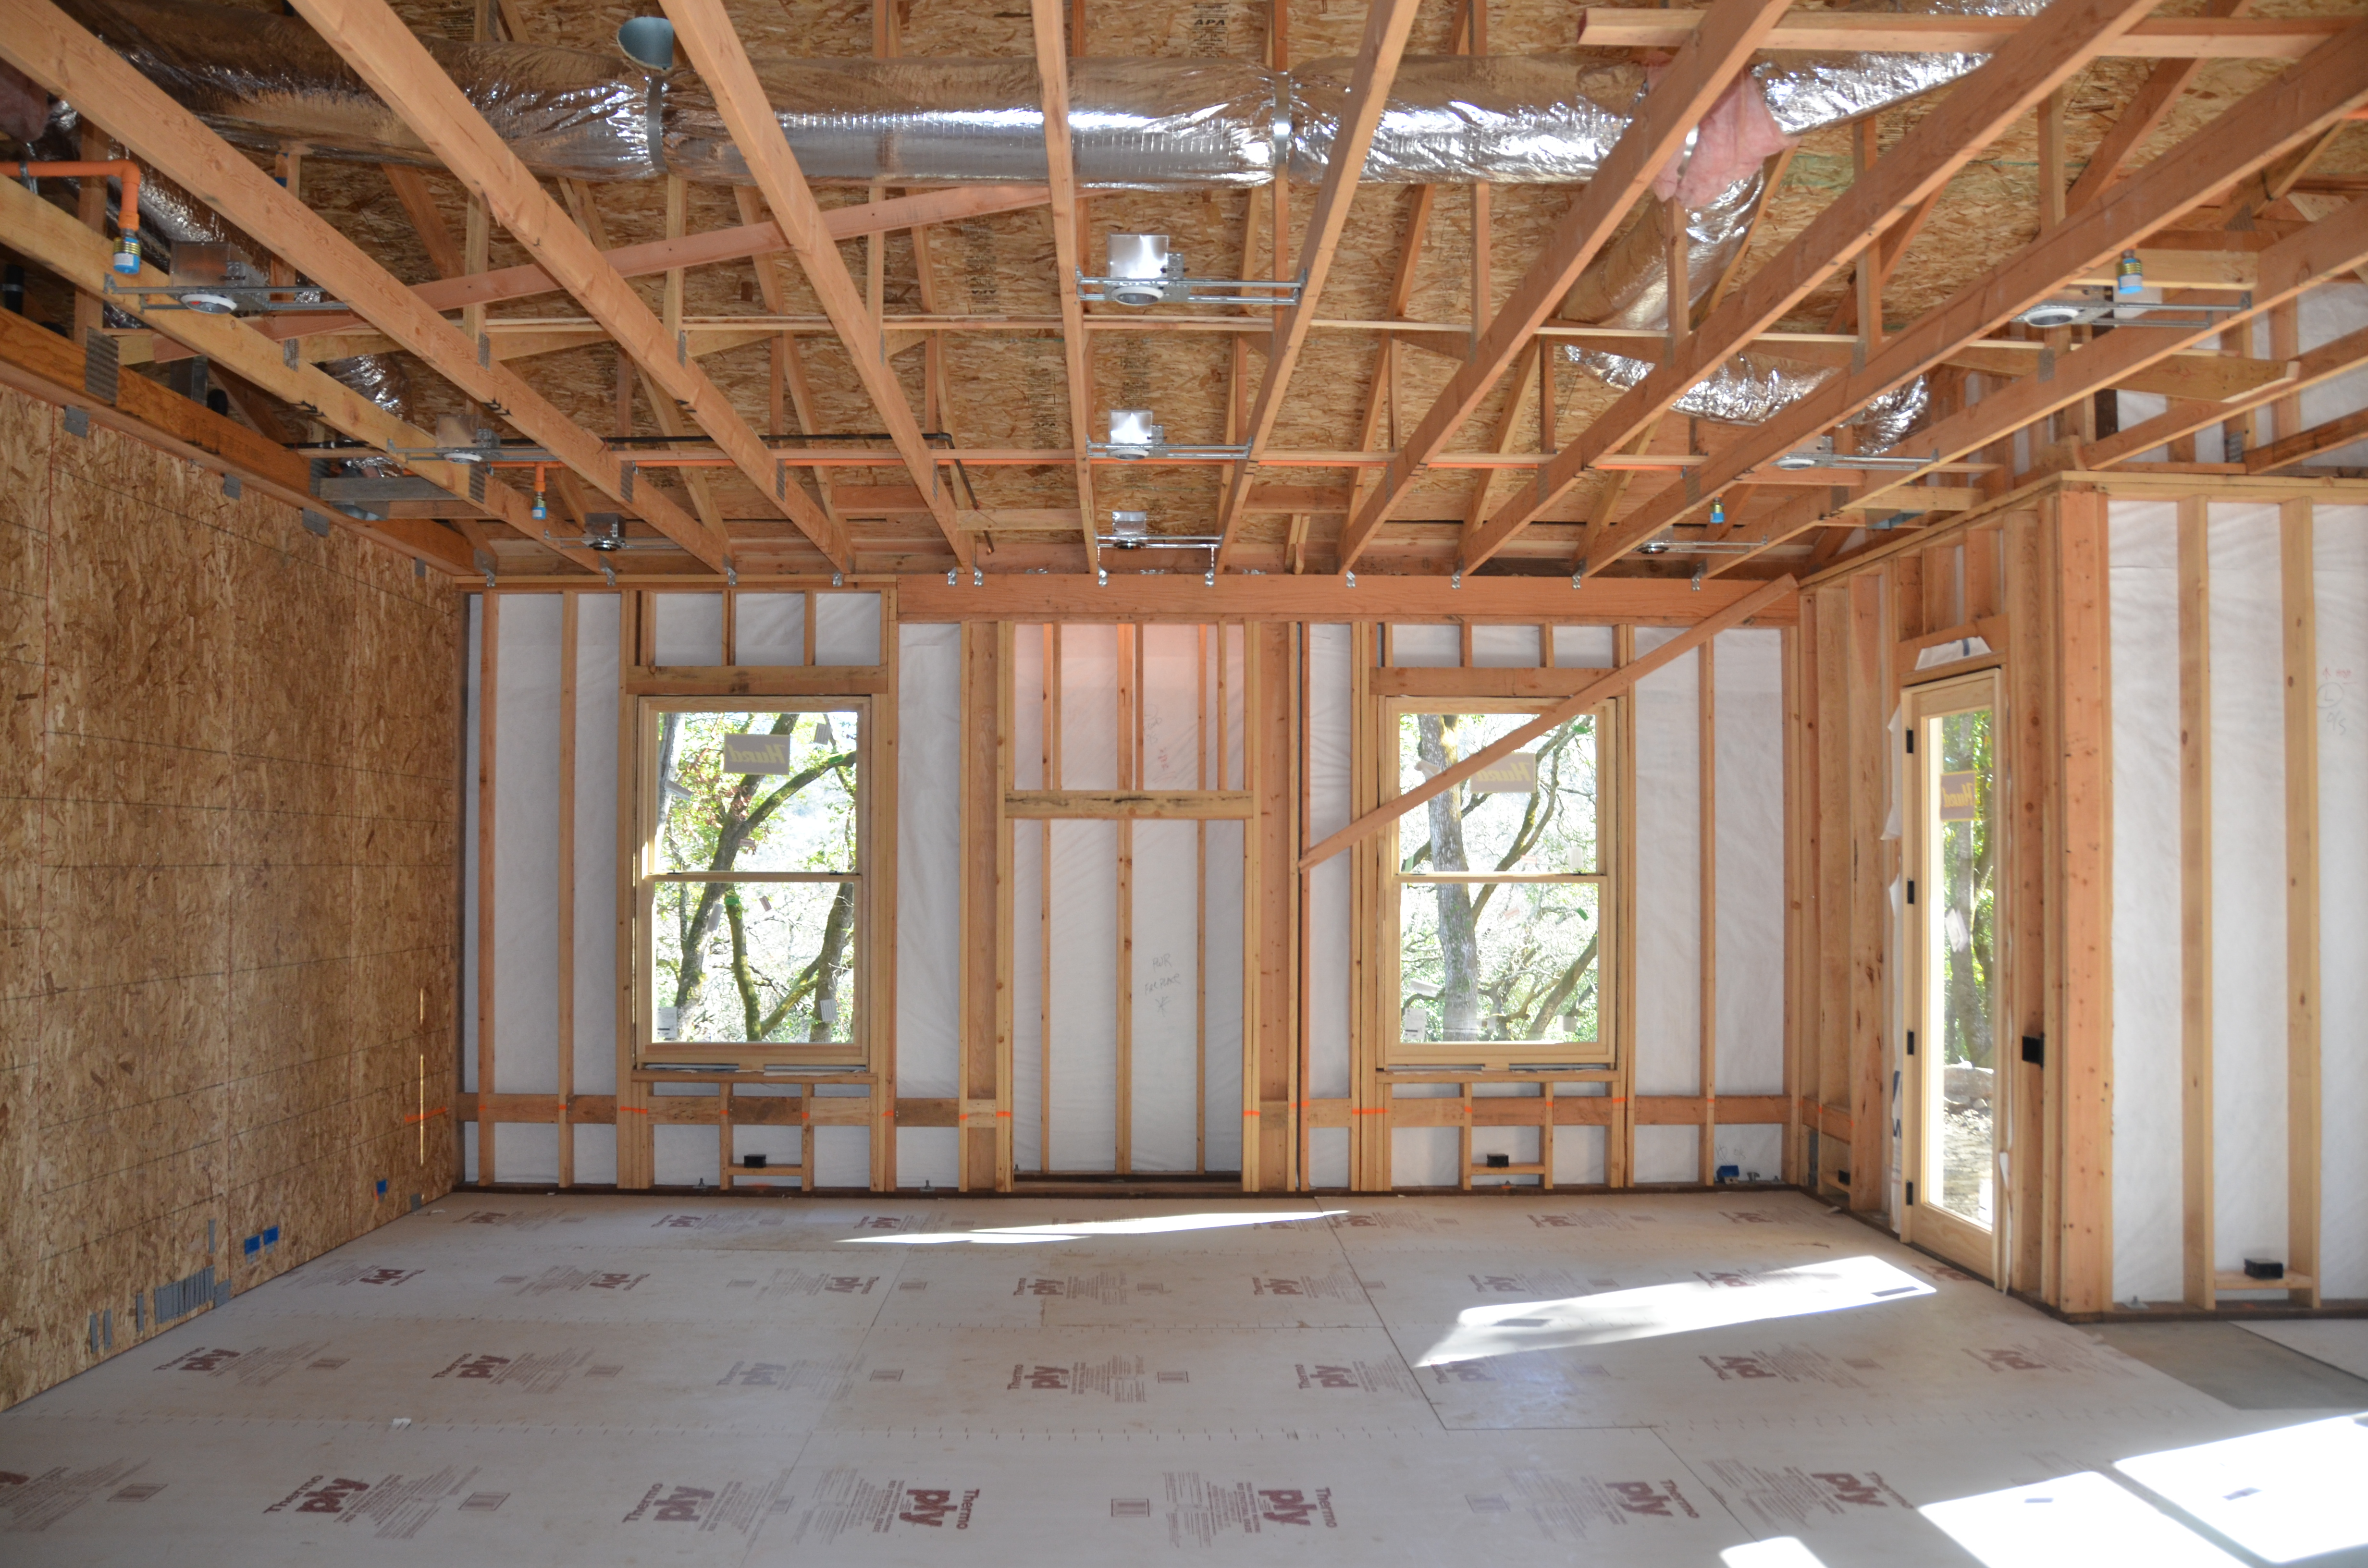 Framing building a country house house plans 508 2 for Summer house floor plans